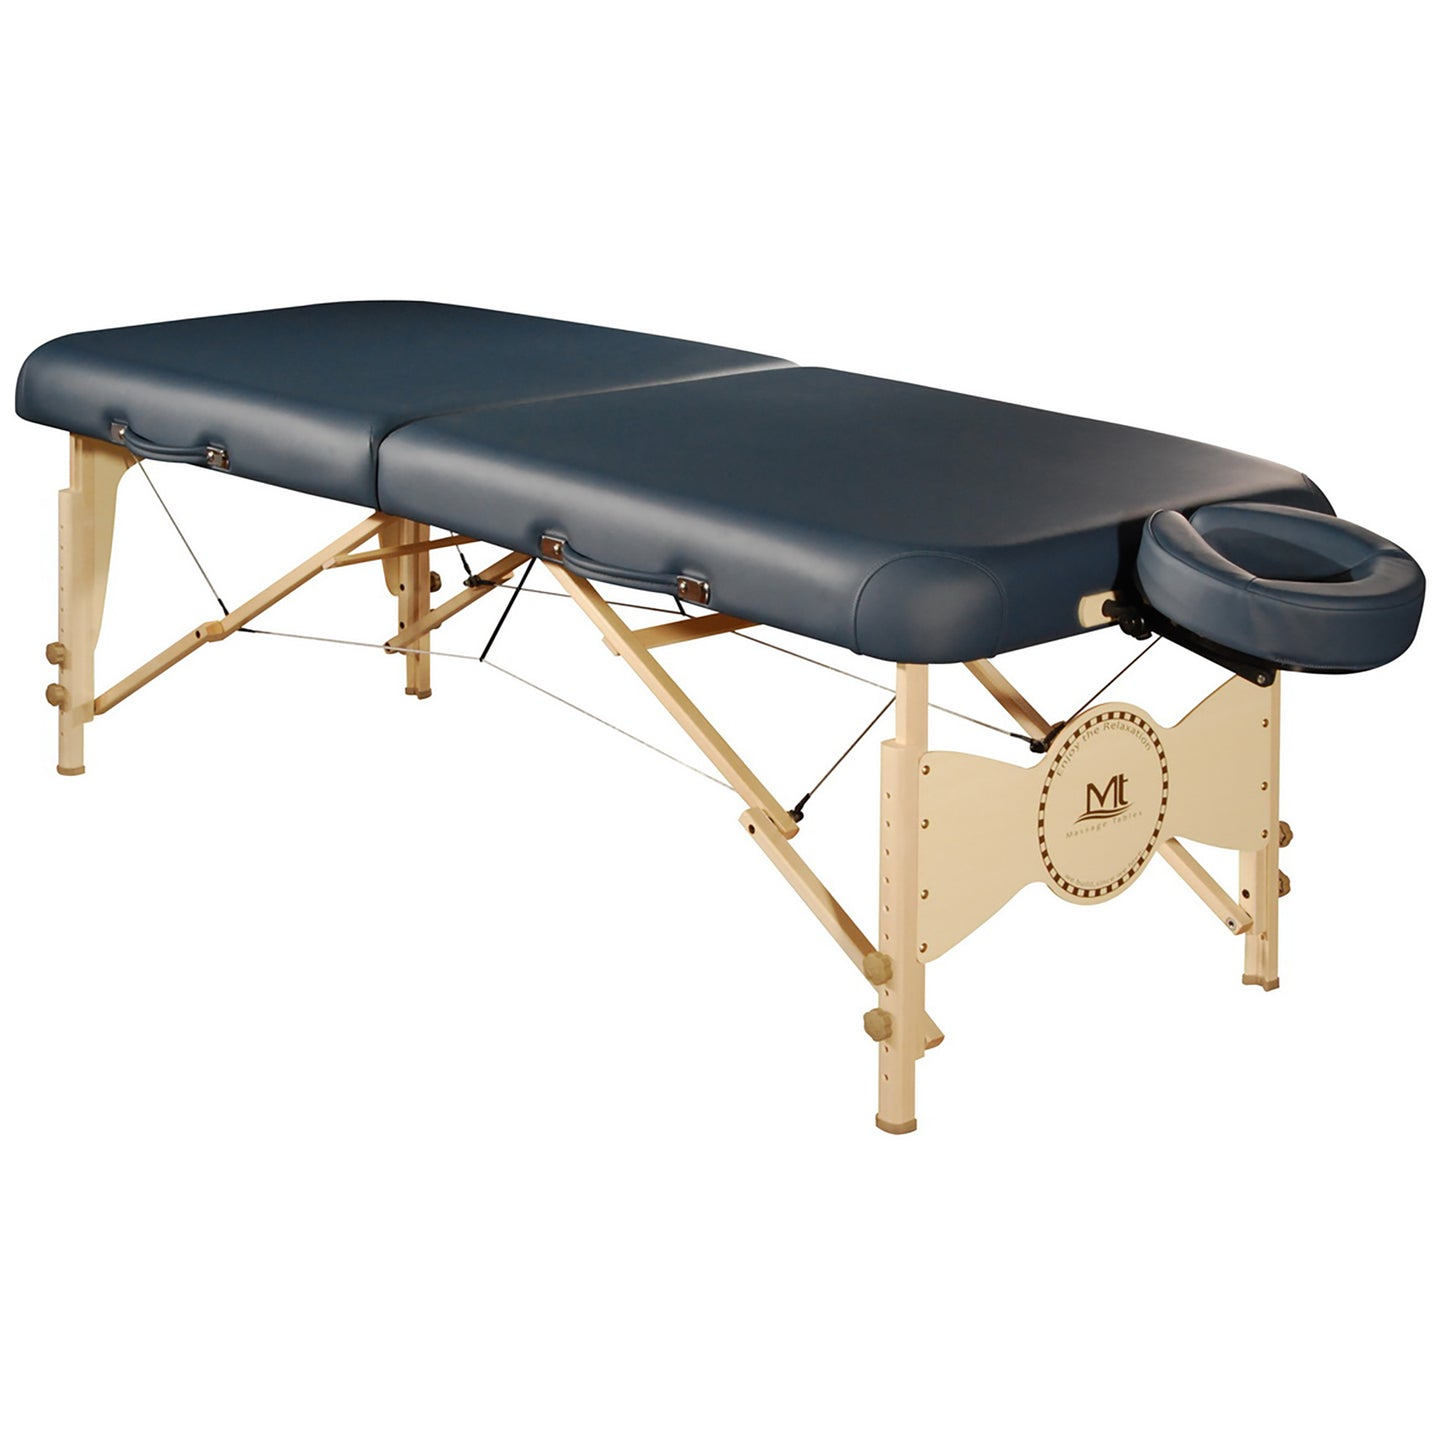 MT Massage - Midas Plus Portable Massage Table Package 30